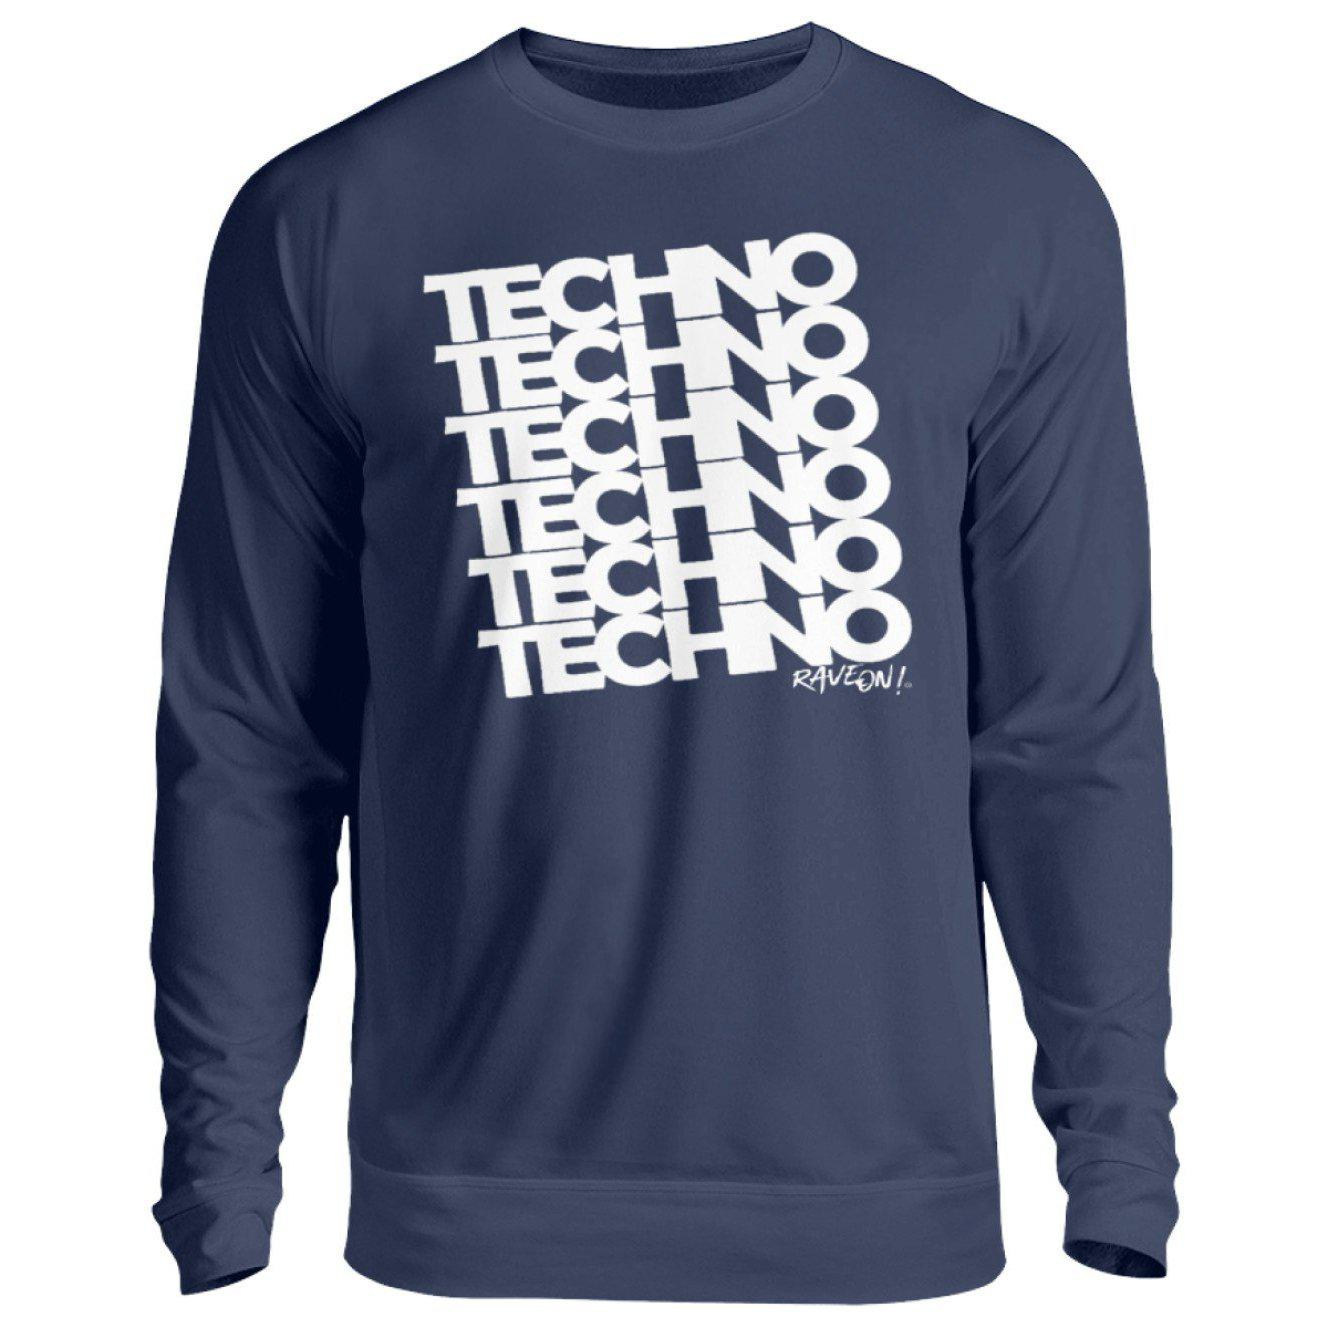 TECHNO 6 Rave ON!® T-Shirt - Unisex Pullover-Unisex Sweatshirt-New French Navy-S-Rave-On! I www.rave-on.shop I Deine Rave & Techno Szene Shop I apparel, bopullover, boyfriend pullover, boypullover, Design - TECHNO 6 Rave ON!® T-Shirt, Electro, house, on, On!®, pullover boy, pullover boyfriend, rave, rave apparel, rave clothing, rave gear, rave on, Rave On!®, rave wear, raver, techno, ® - Sexy Festival Streetwear , Clubwear & Raver Style